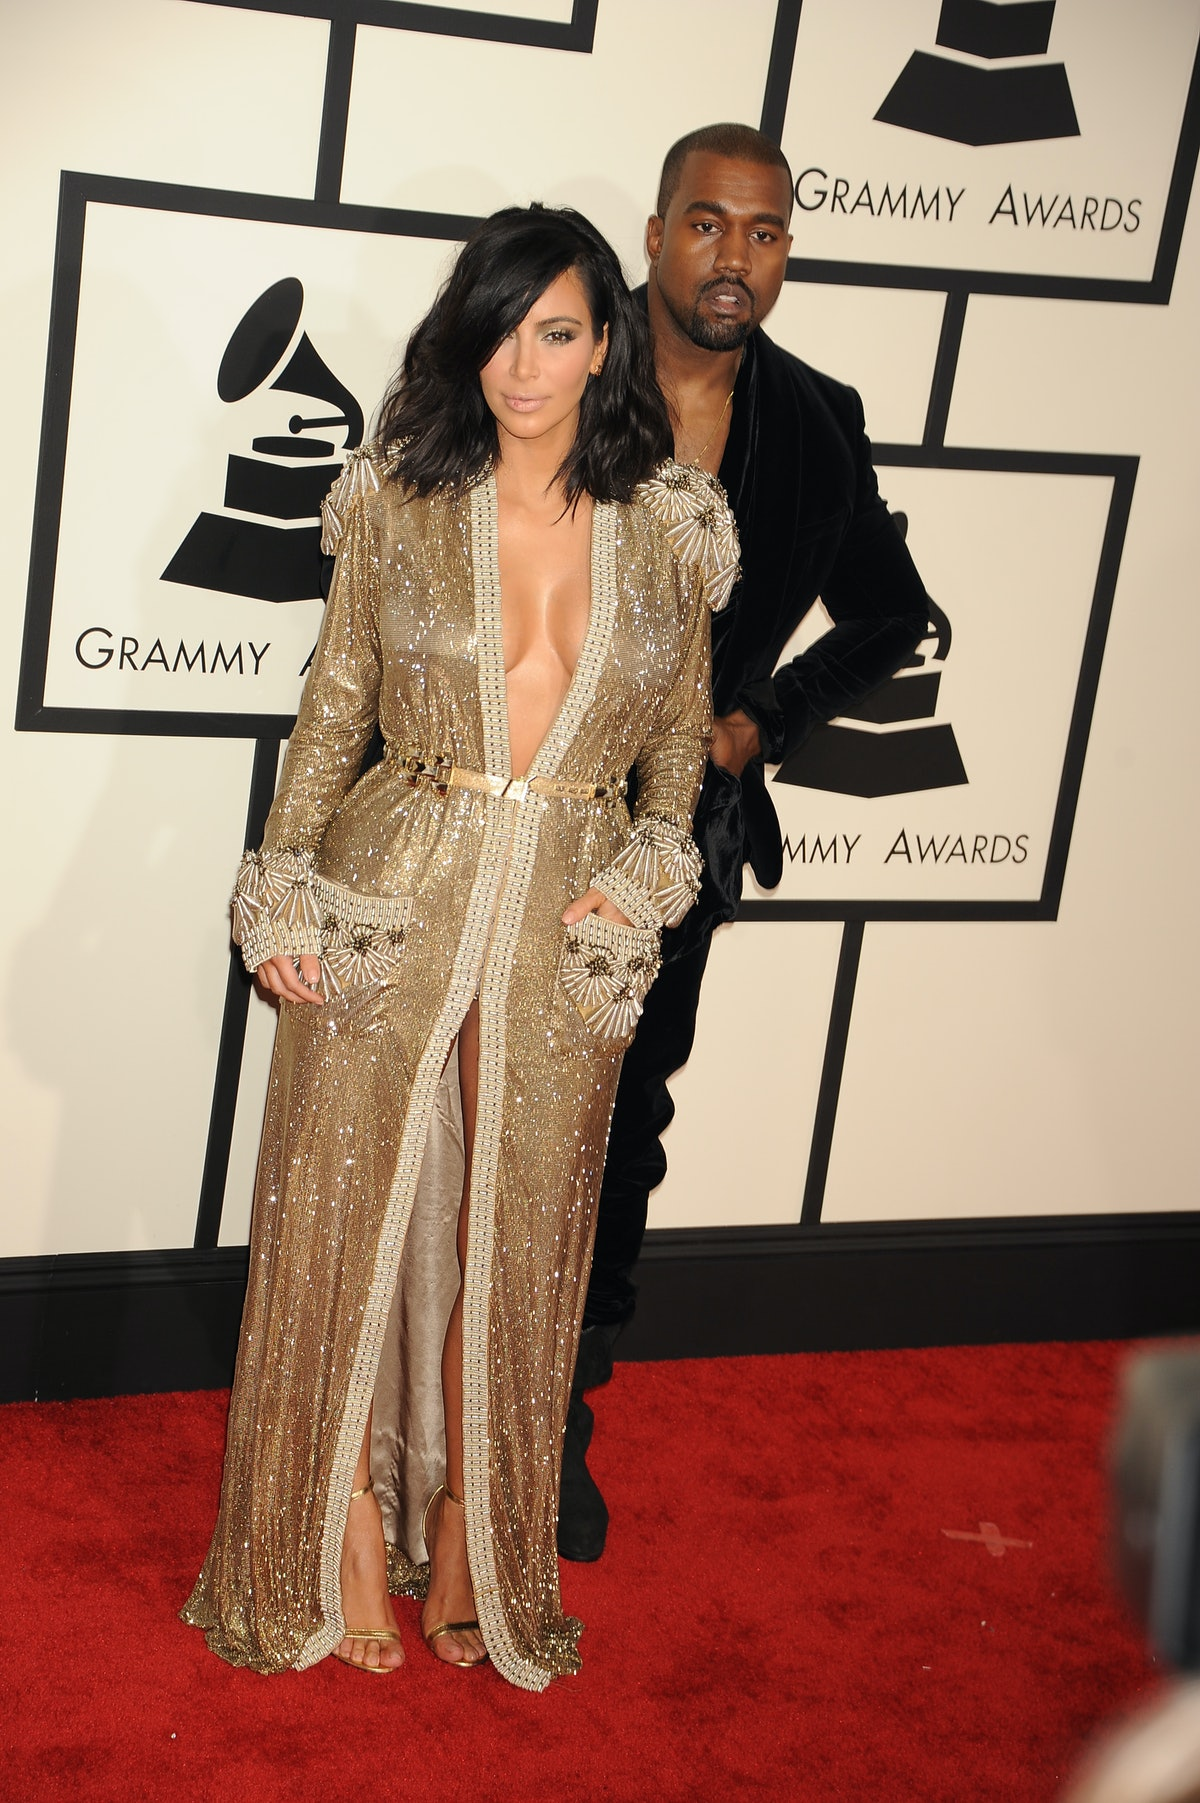 Rapper Kanye West and TV personality Kim Kardashian arrive at The 57th Annual GRAMMY Awards held at the Staples Center. (Photo by Frank Trapper/Corbis via Getty Images)